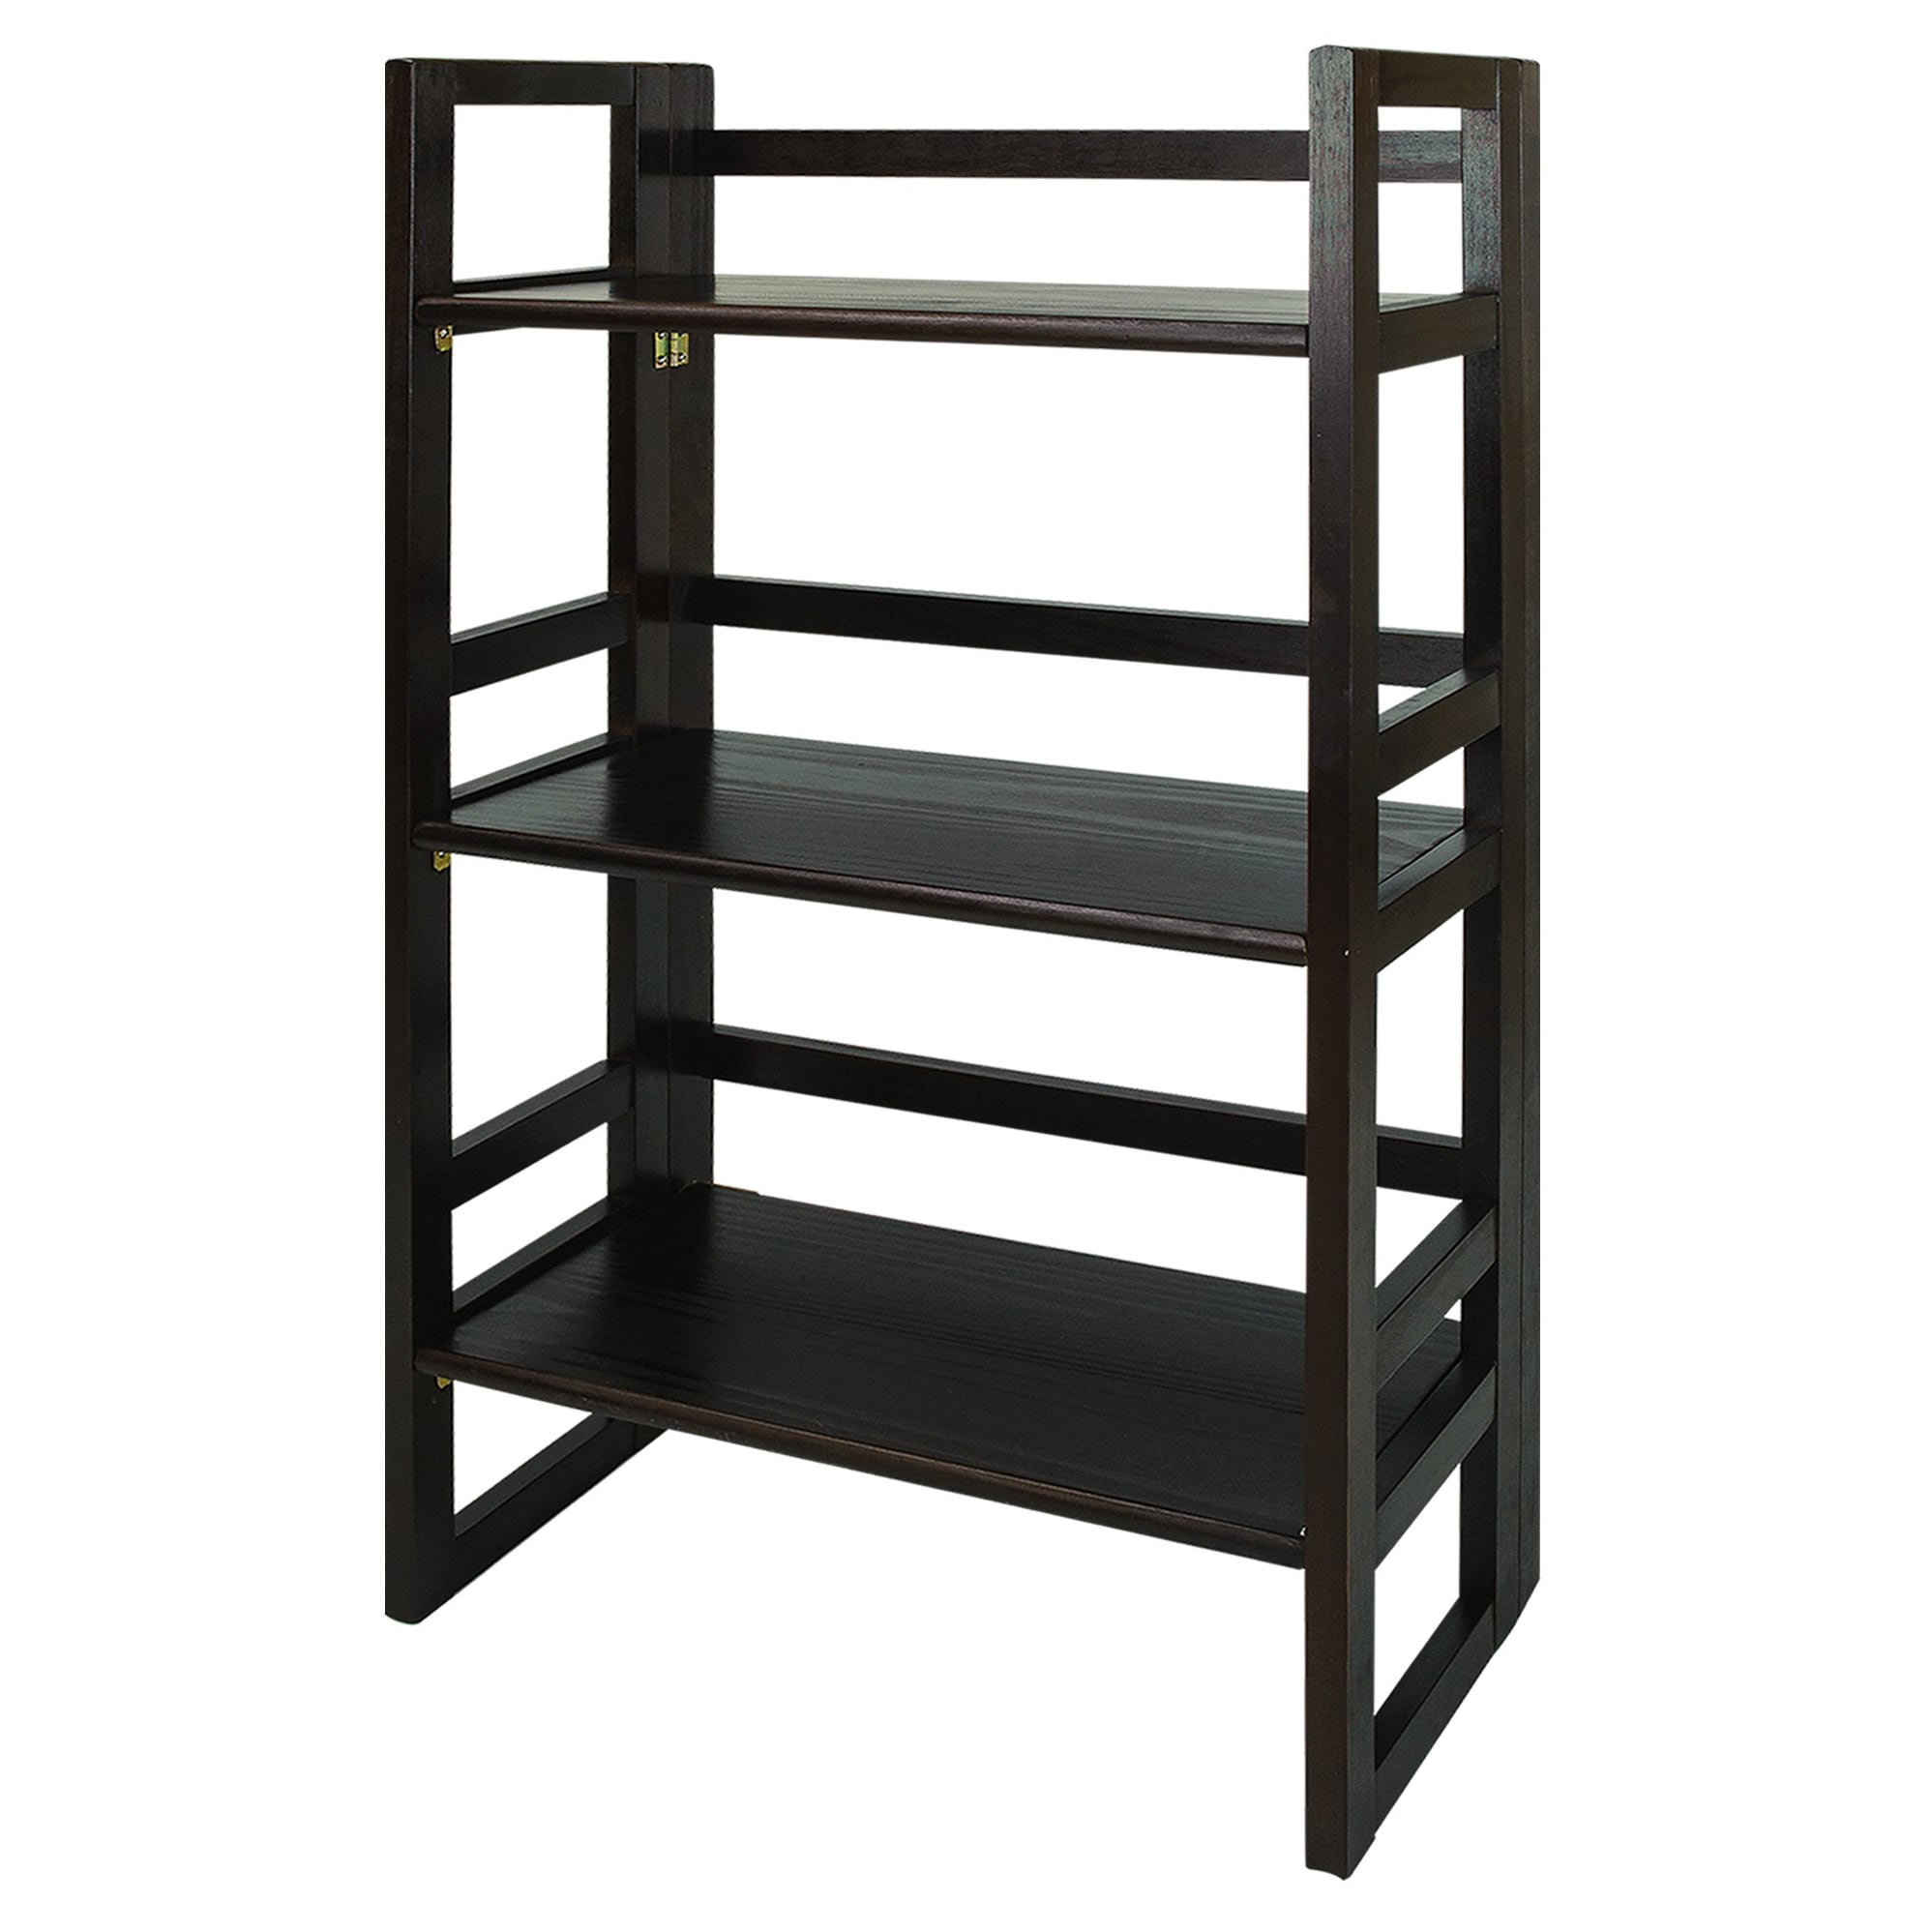 3 Shelf Folding Student 20 75 Inch Wide Bookcase Free Shipping Today 14339468